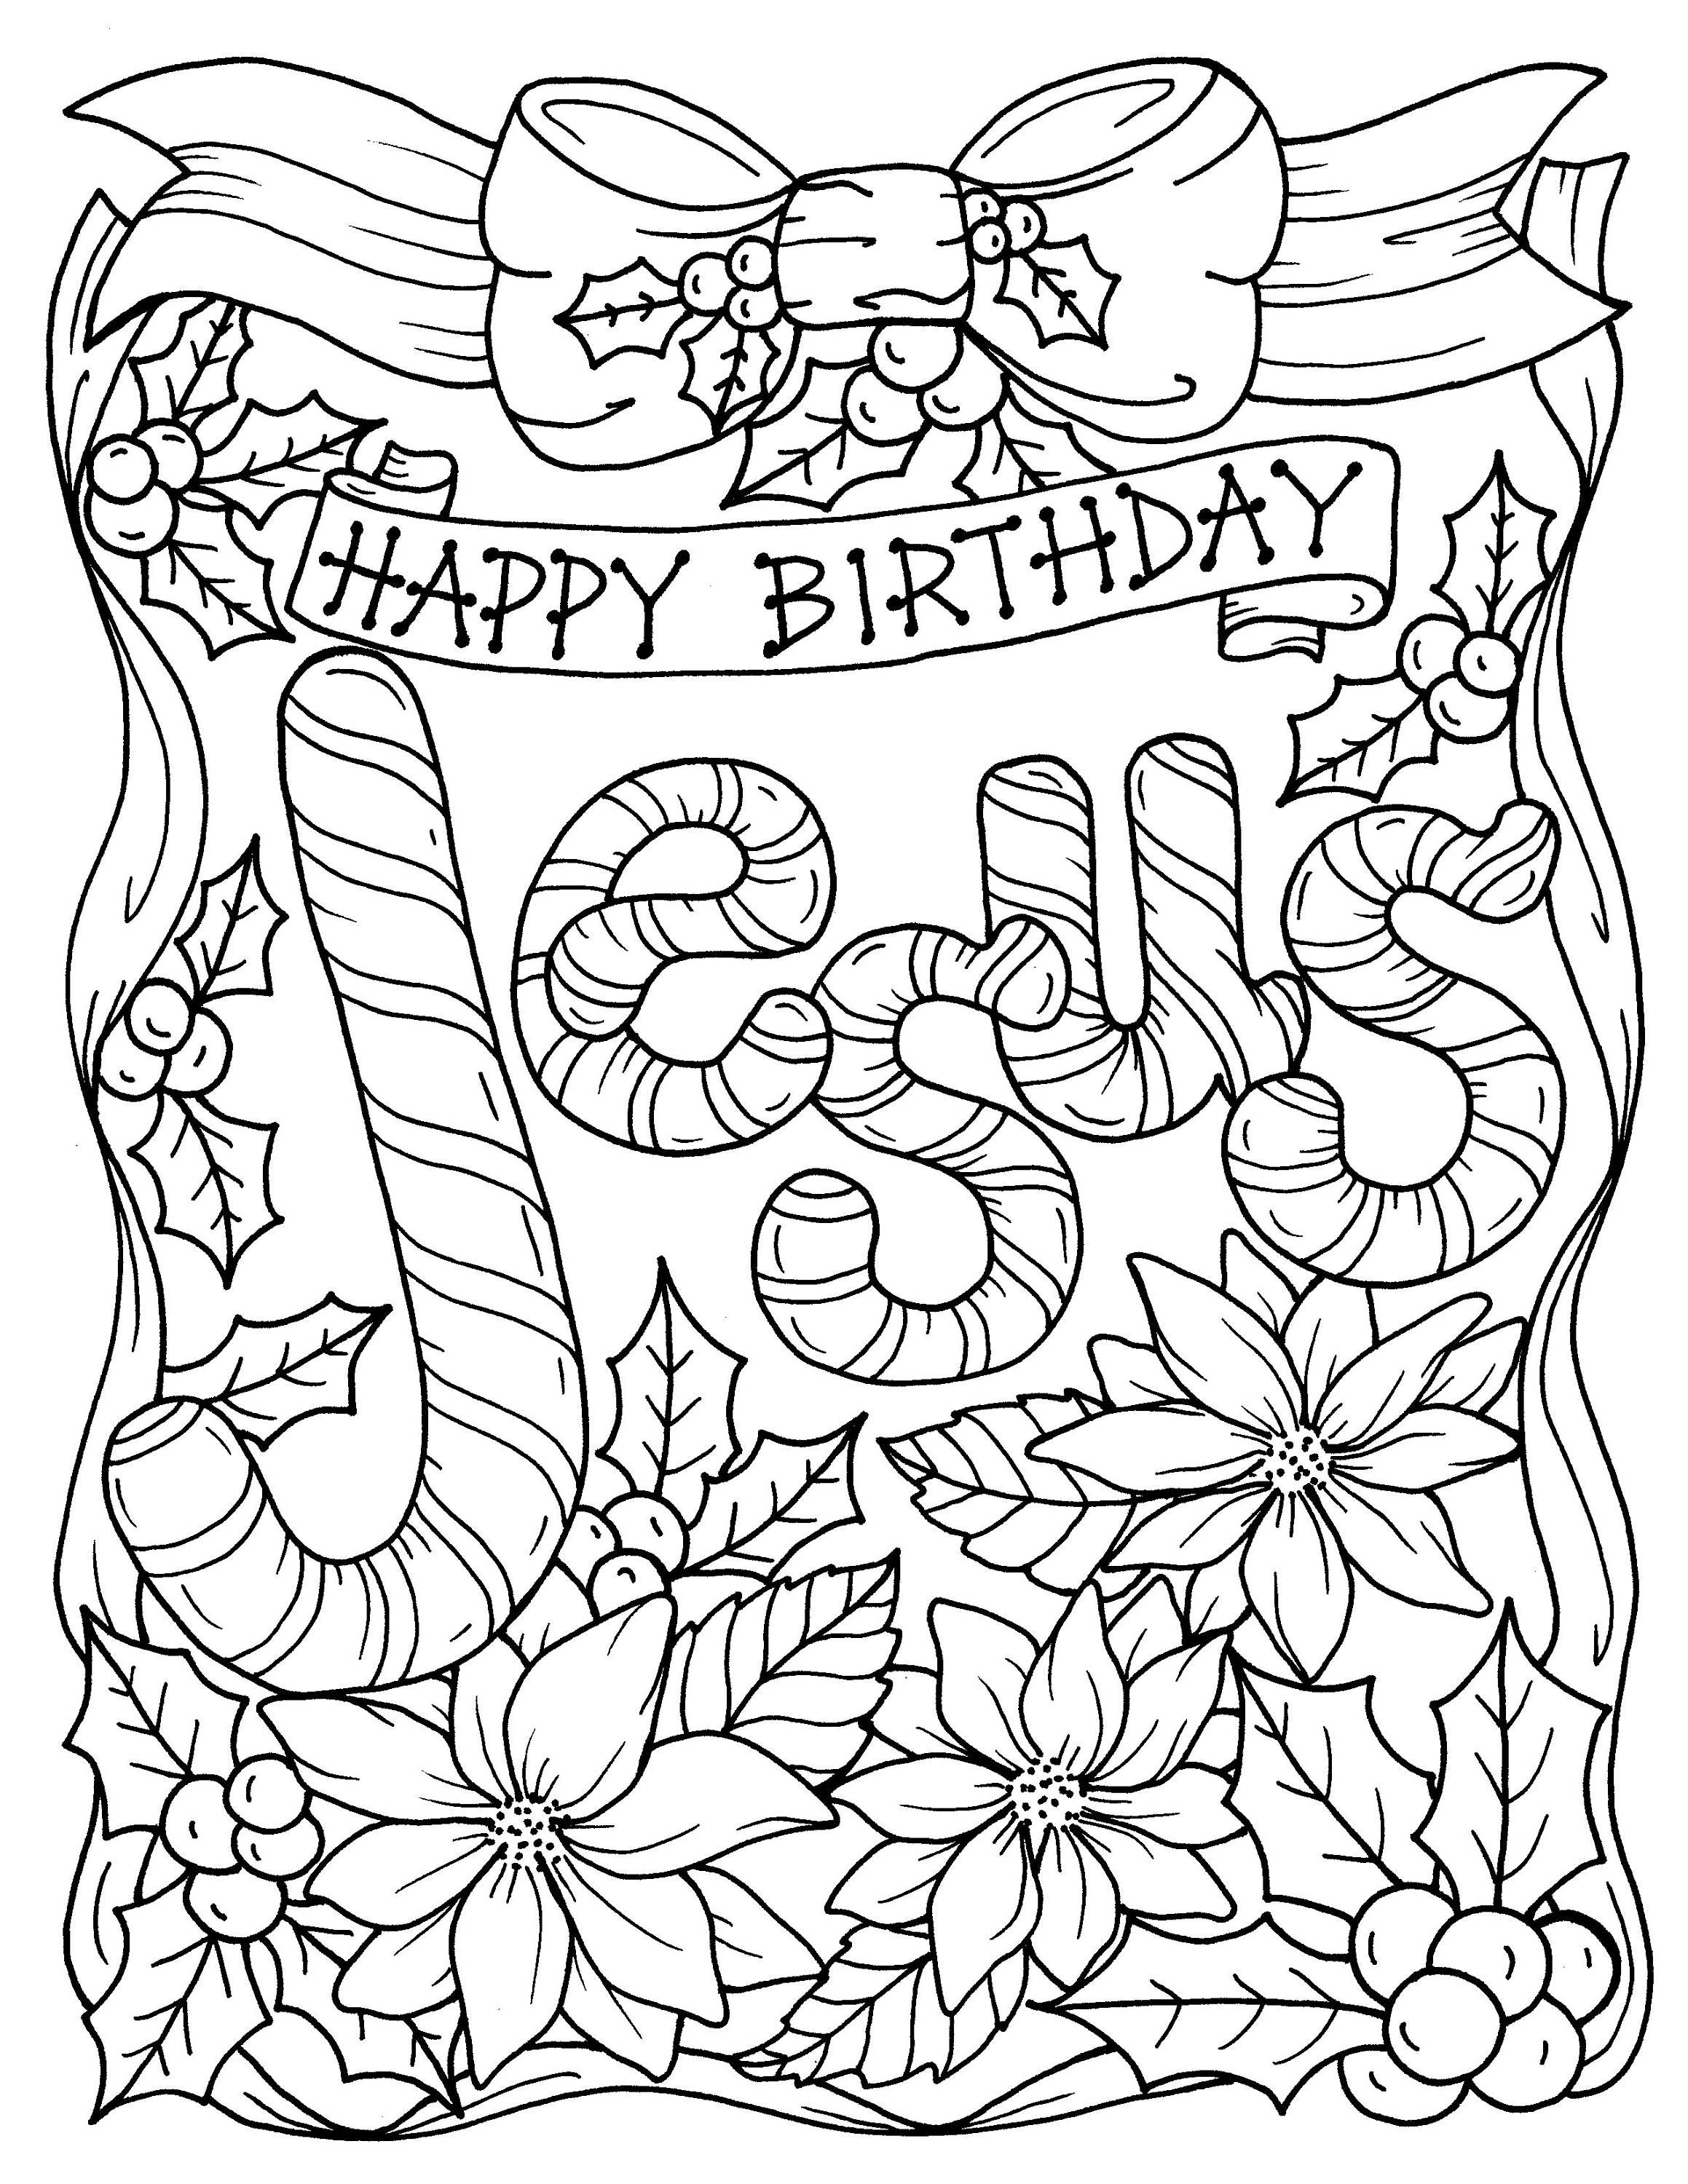 free christian christmas coloring pages printable religious christmas coloring pages for kids coloring home free christmas christian printable coloring pages